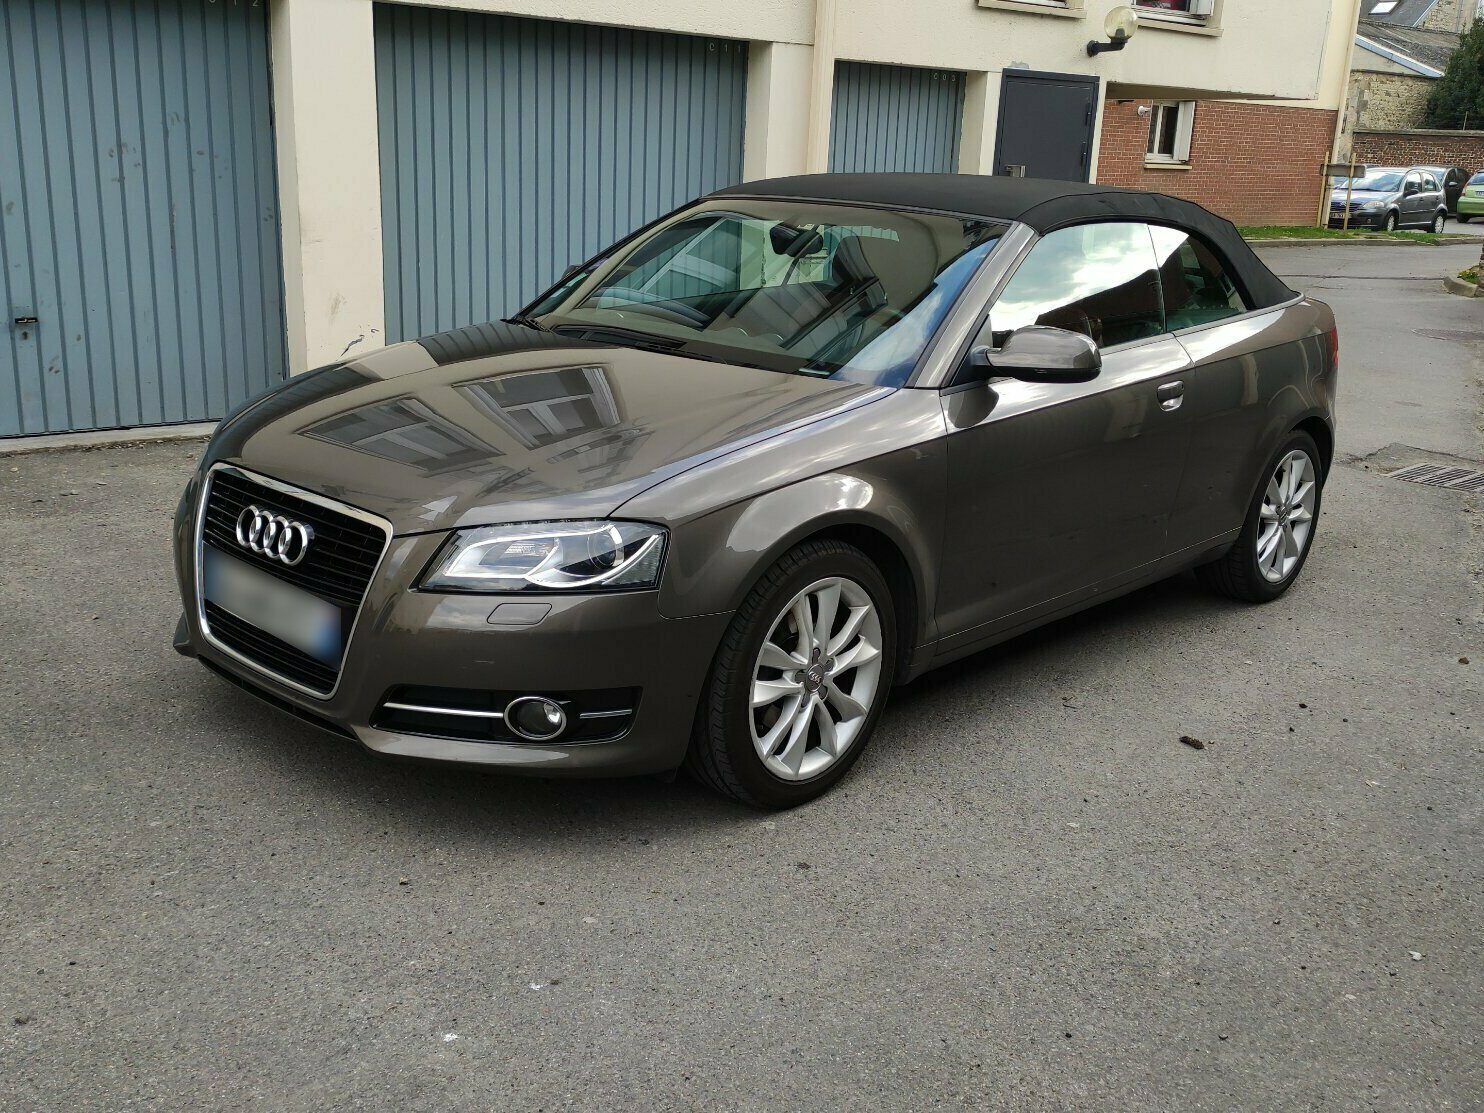 AUDI A3 CABRIOLET 1.2 TFSI 105 AMBITION LUXE START-STOP